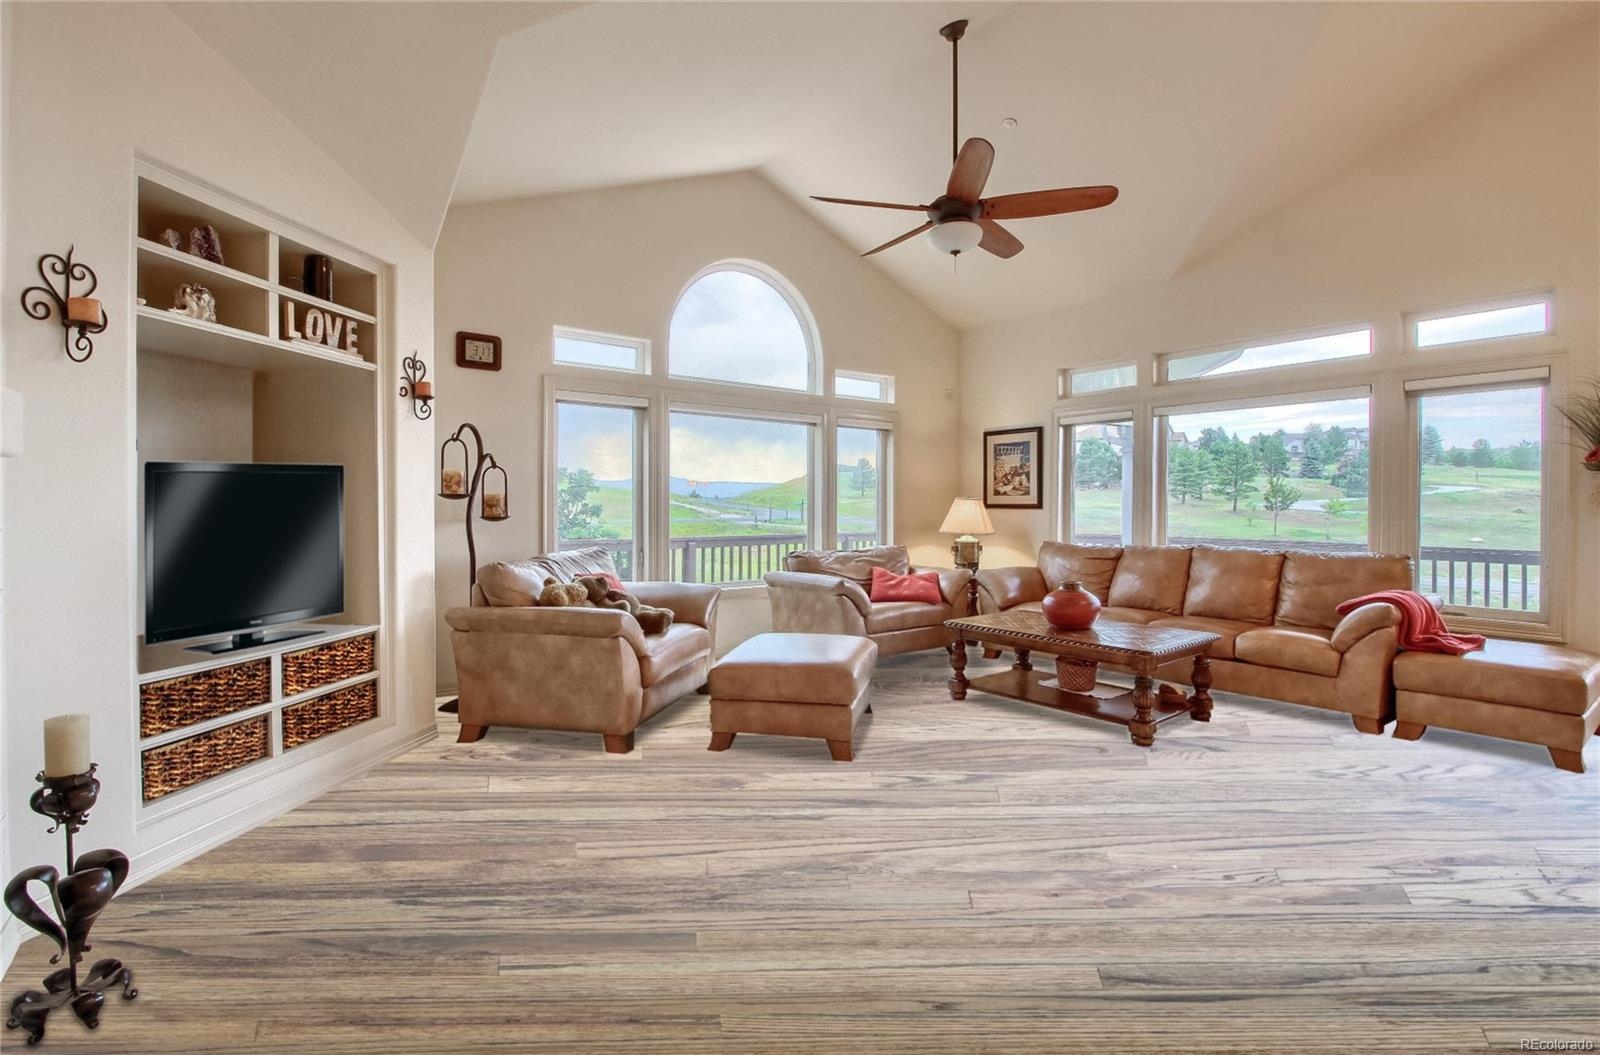 With proposed extended hardwood floors